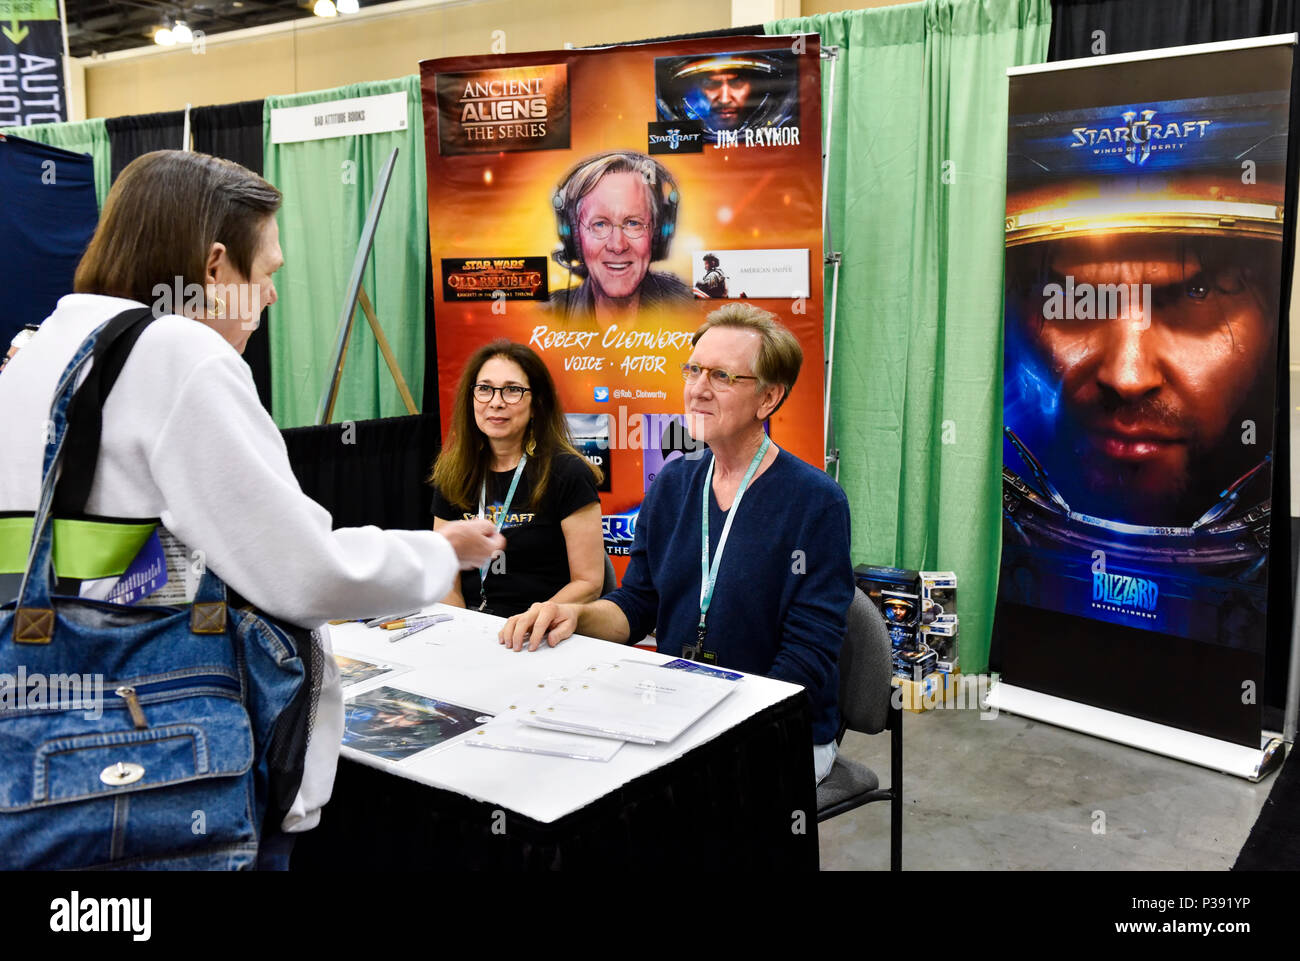 Pasadena, California, June 16, 2018, Robert Clotworthy, the narrator of Anchient Aliens at Alien Con day 2. Credit: Ken Howard Images/Alamy Live News - Stock Image